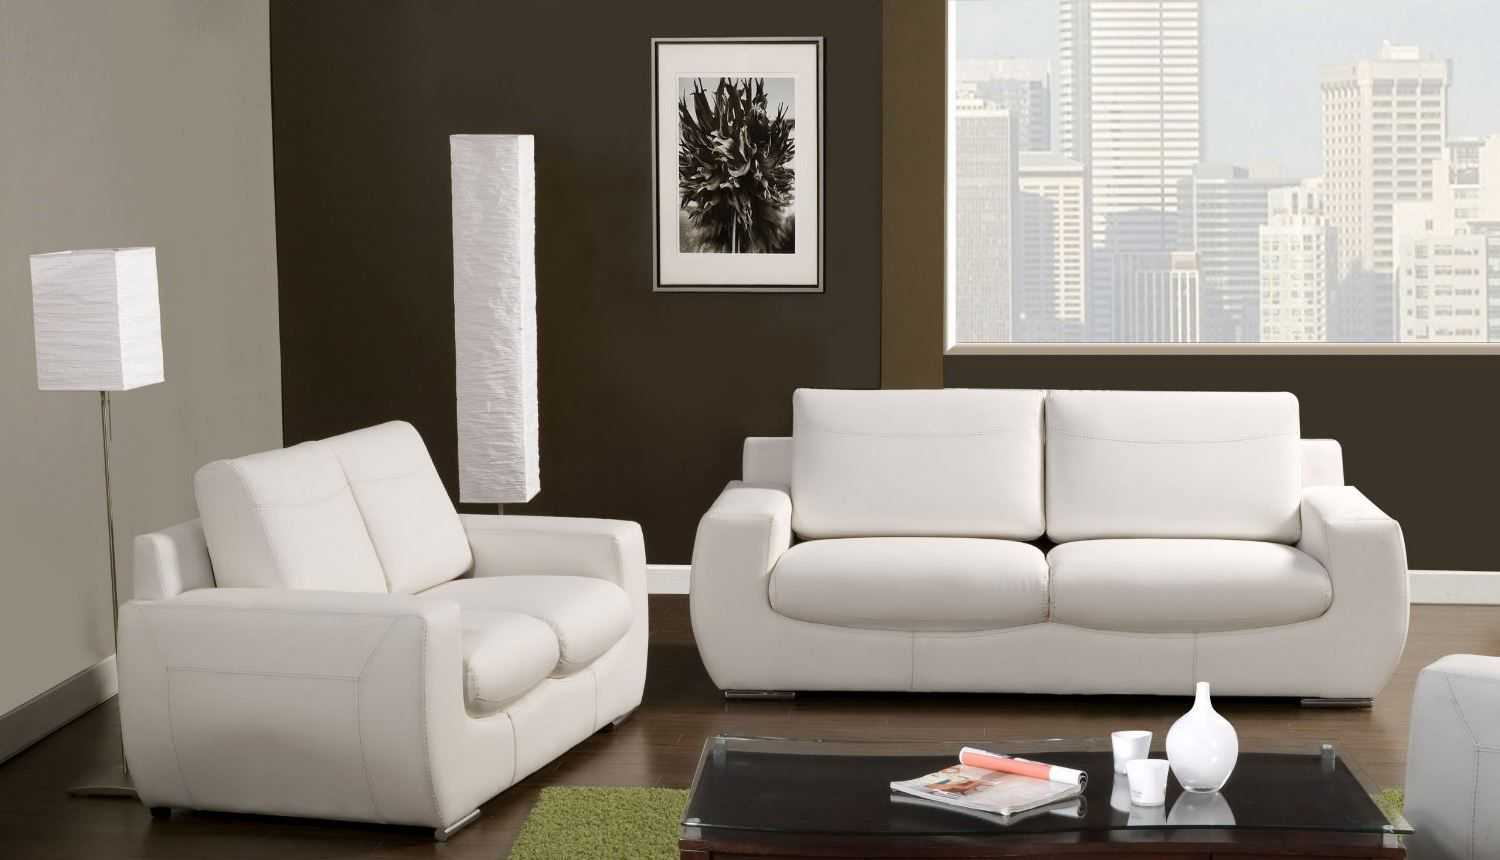 How To Clean Your White Leather Sofa To Keep It Bright As New White Leather Sofas White Leather Couch Rustic Sofa